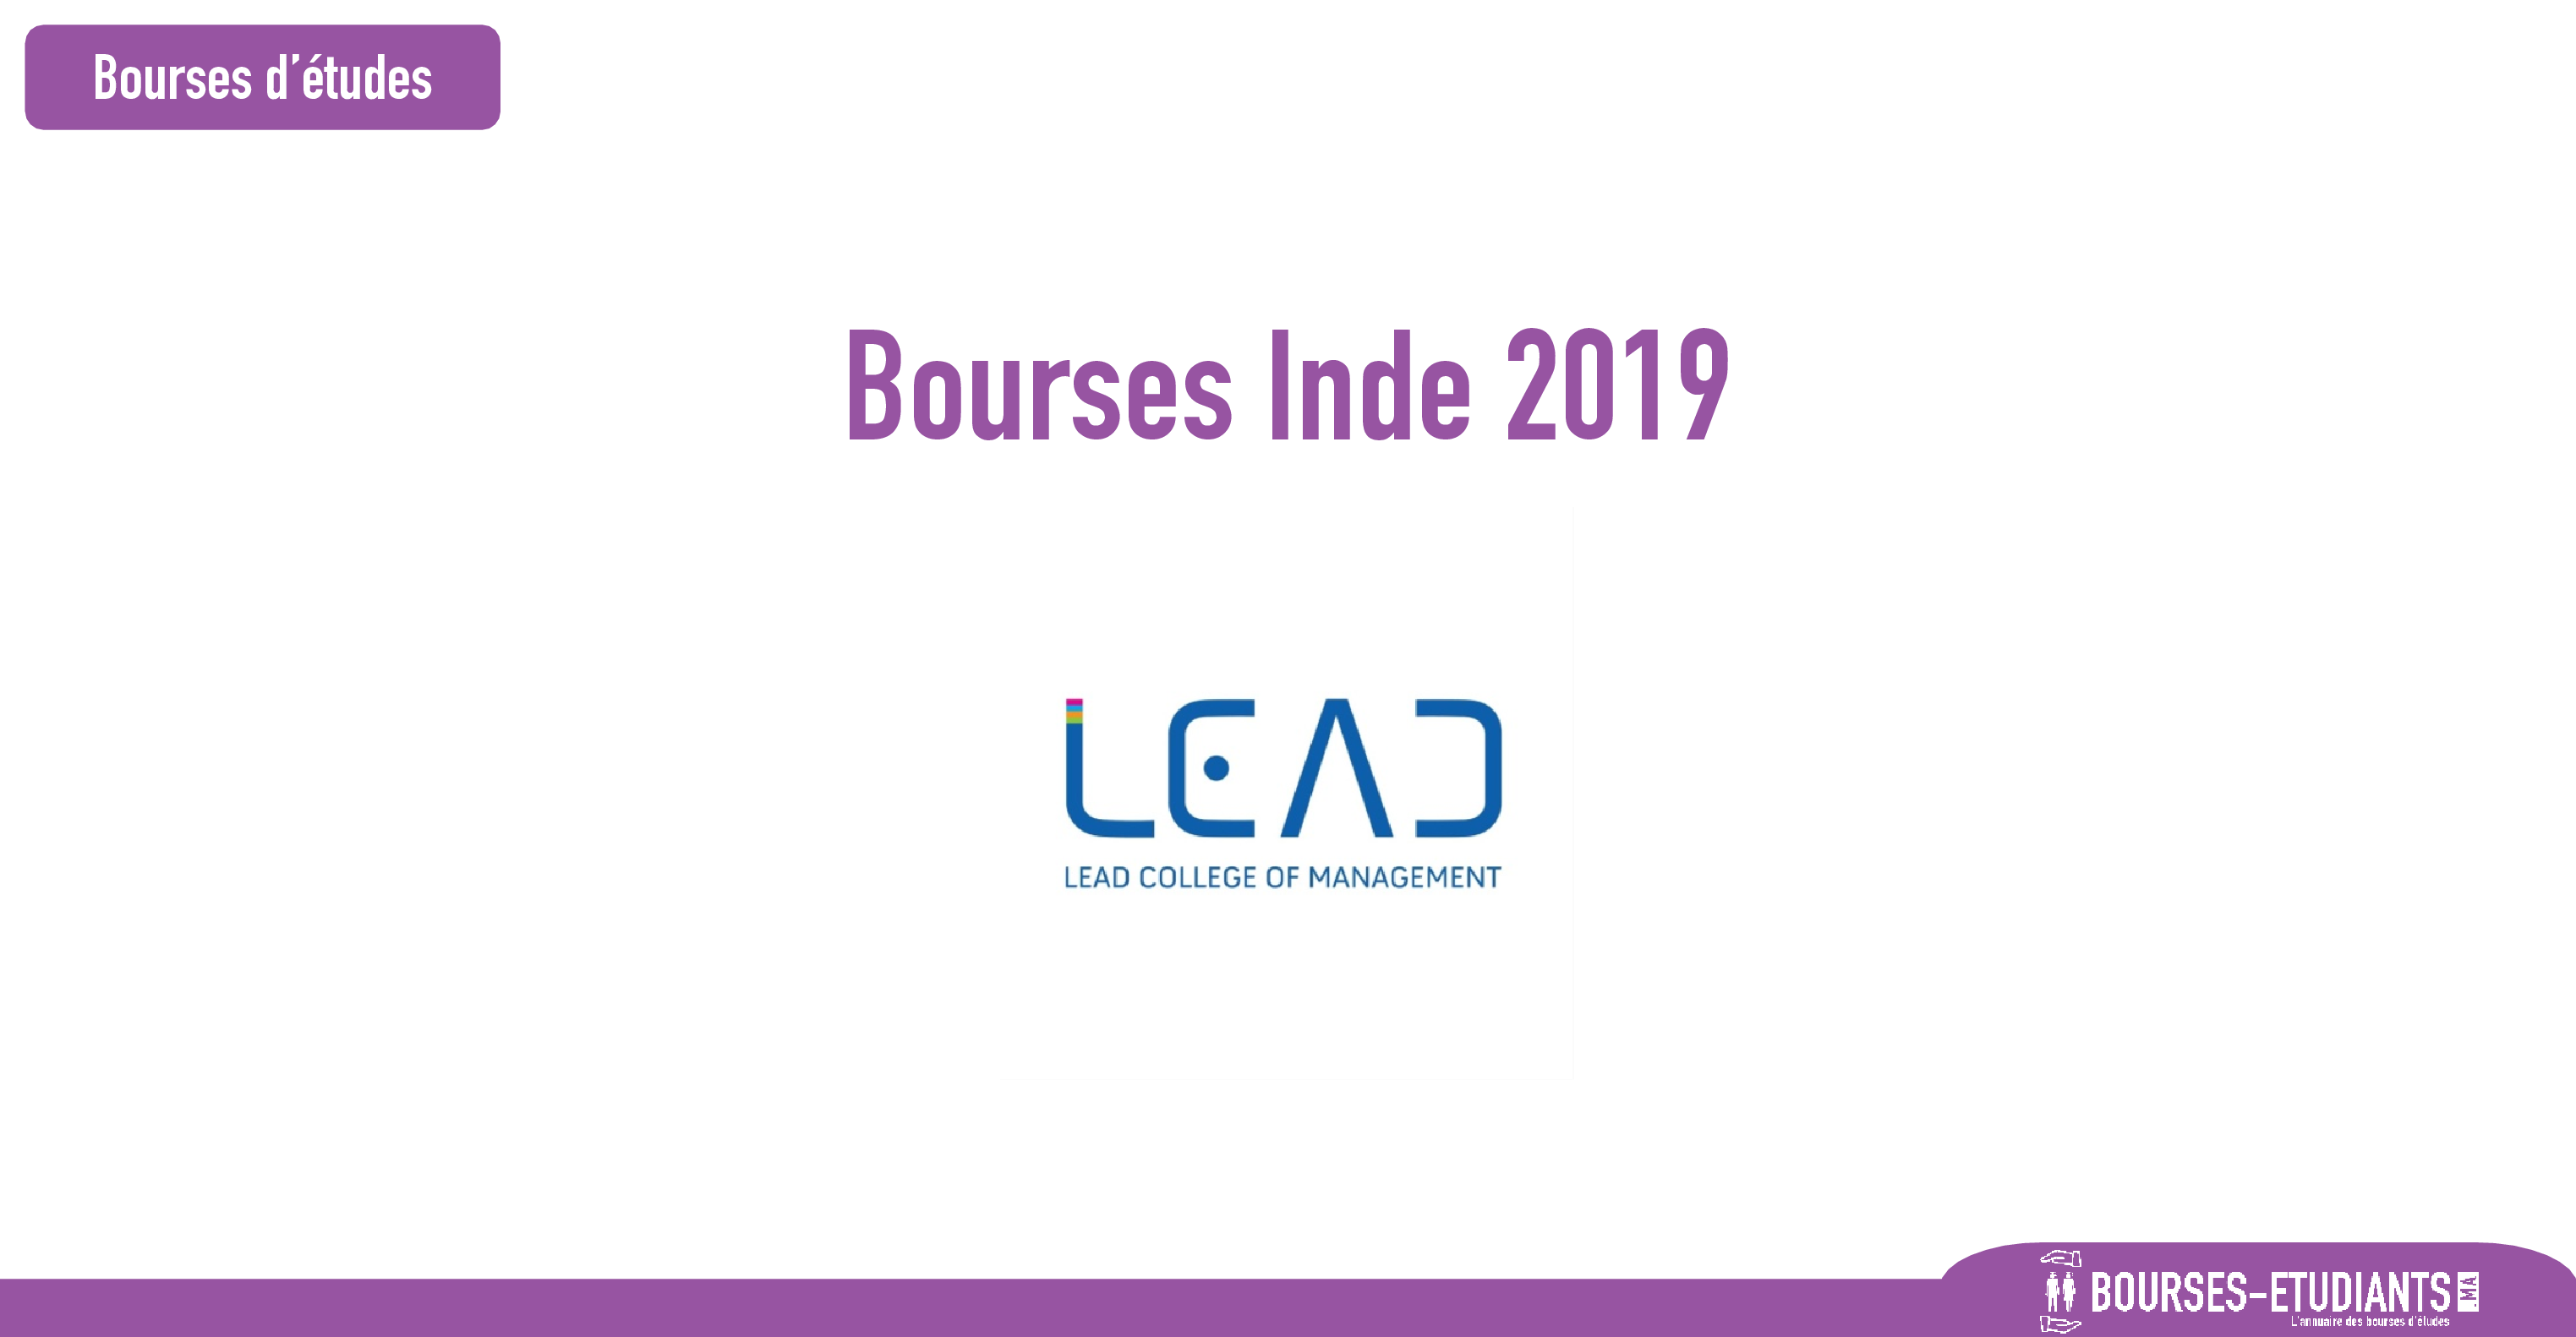 bourse LEAD College of Management